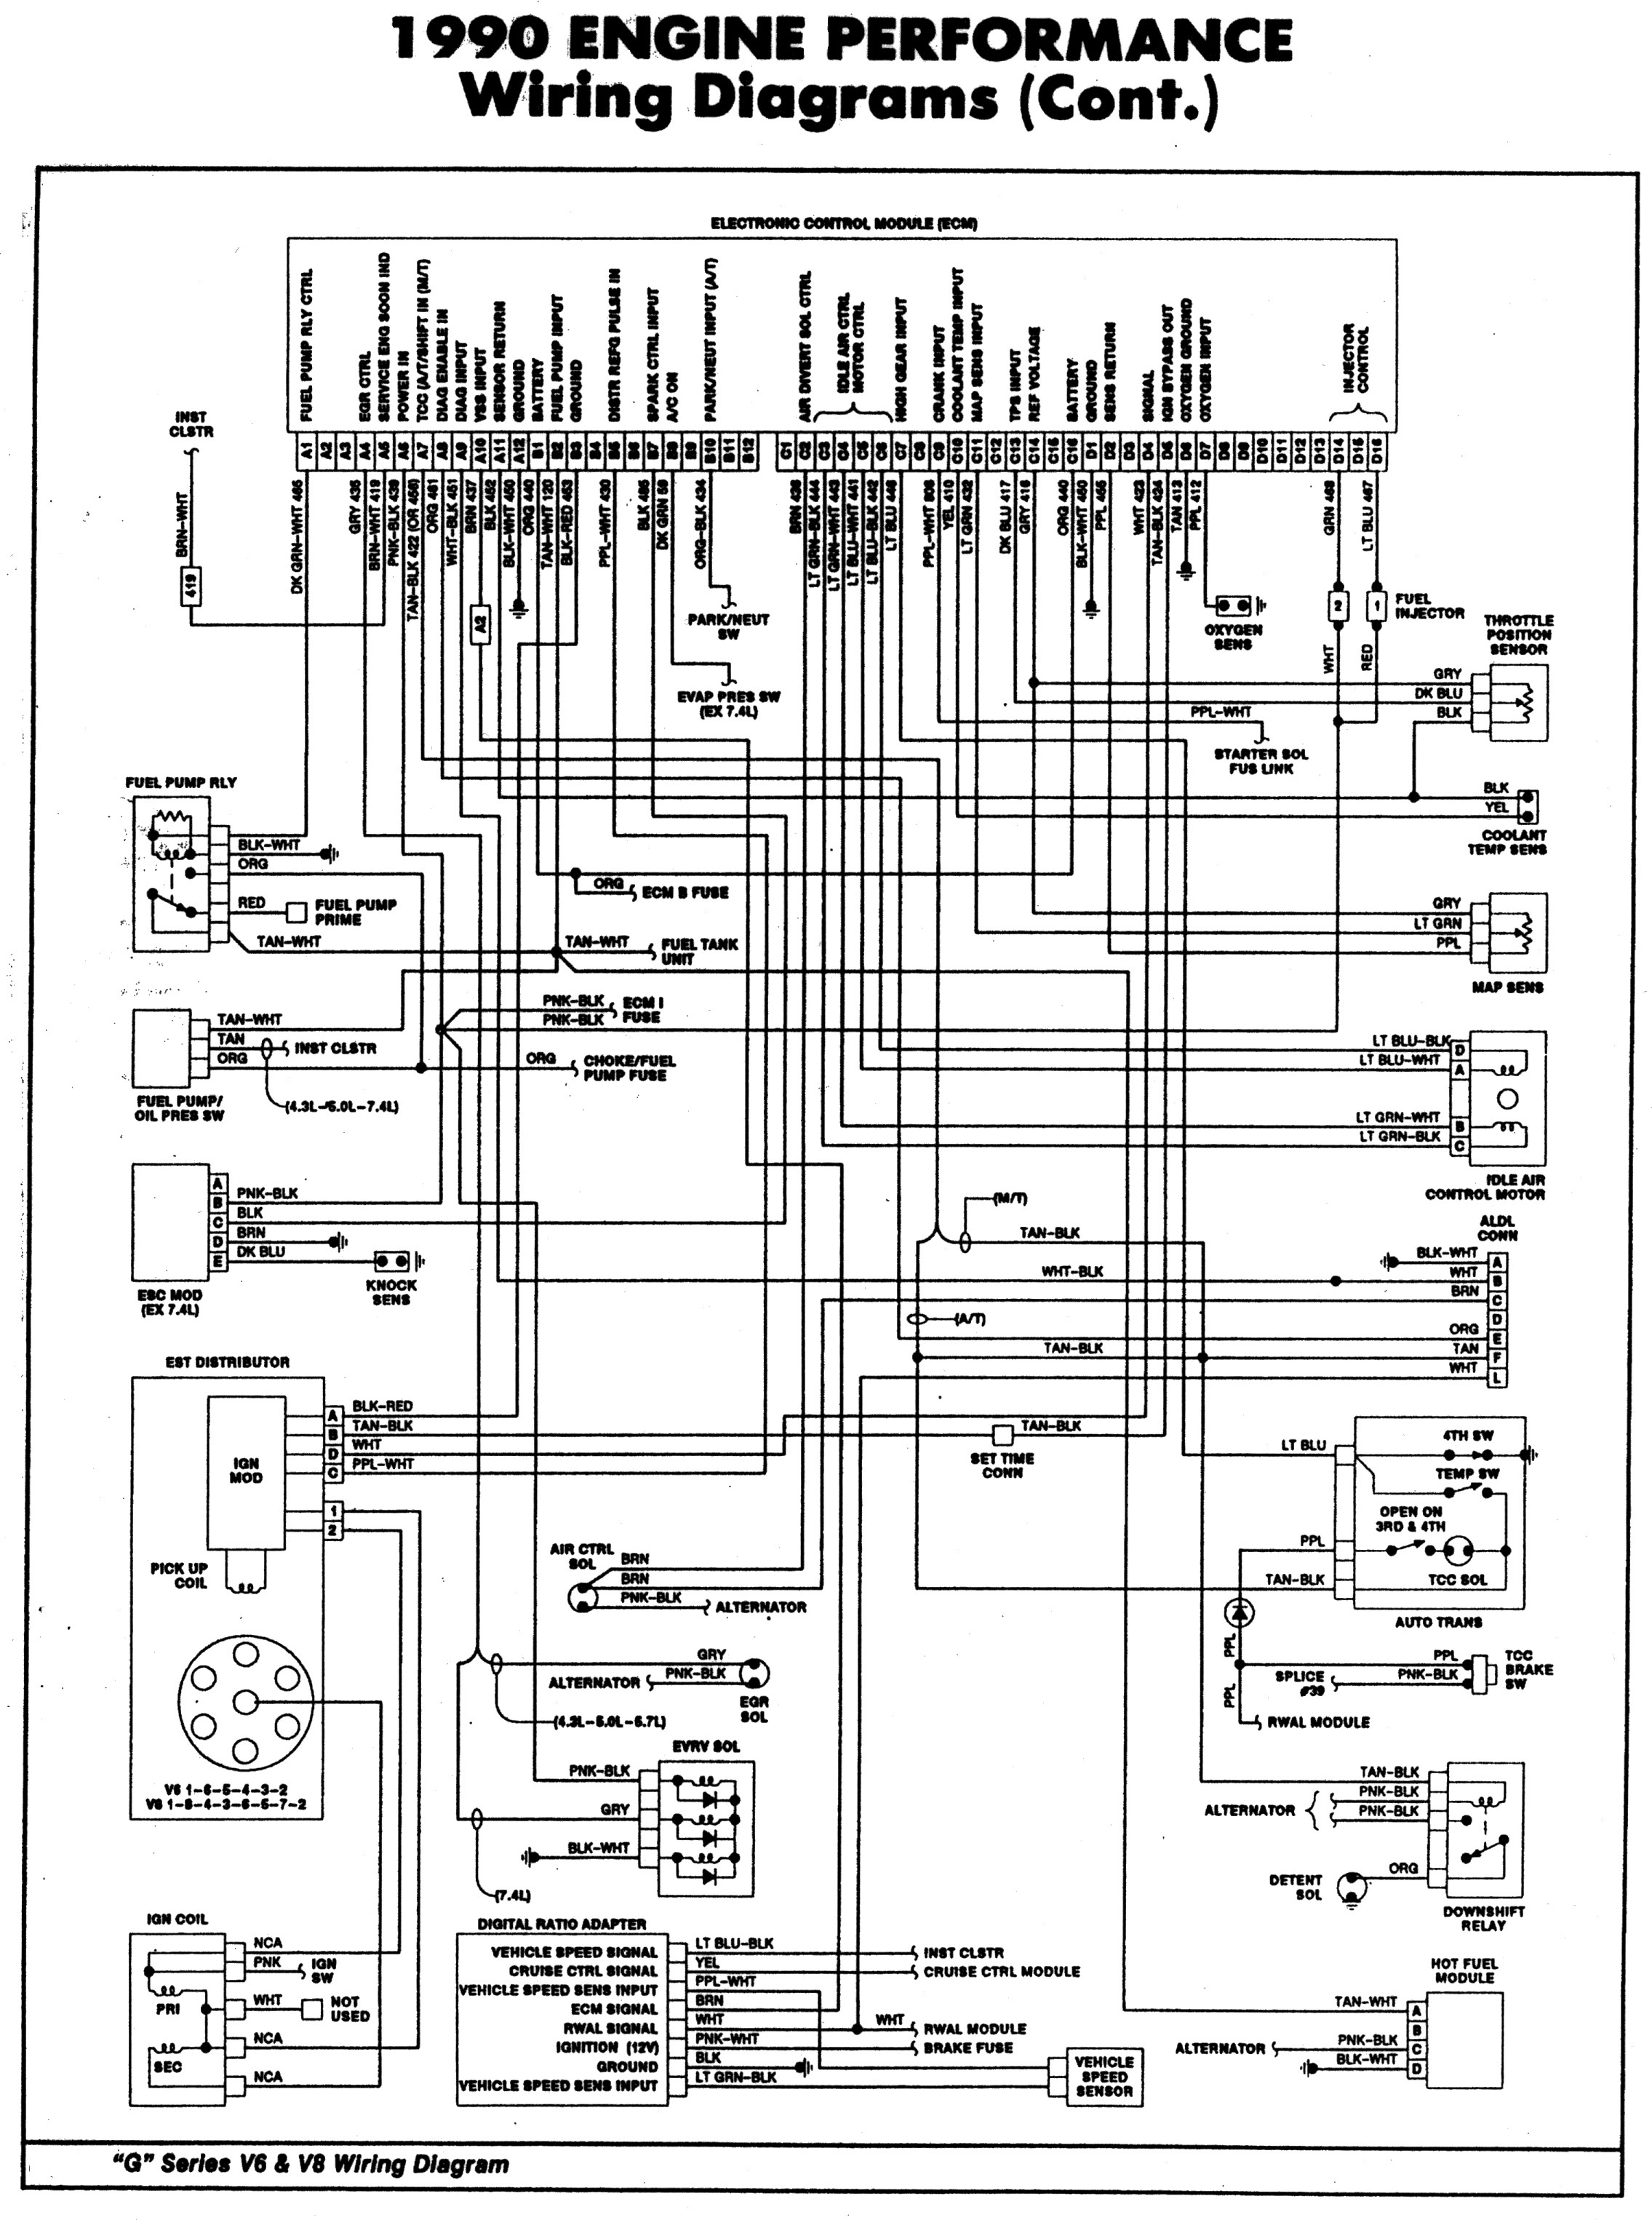 hight resolution of ignitiondiagram 1990 chevy suburban tbi 350 installation land 1990 suburban fuel pump wiring diagram 1990 suburban wiring diagram